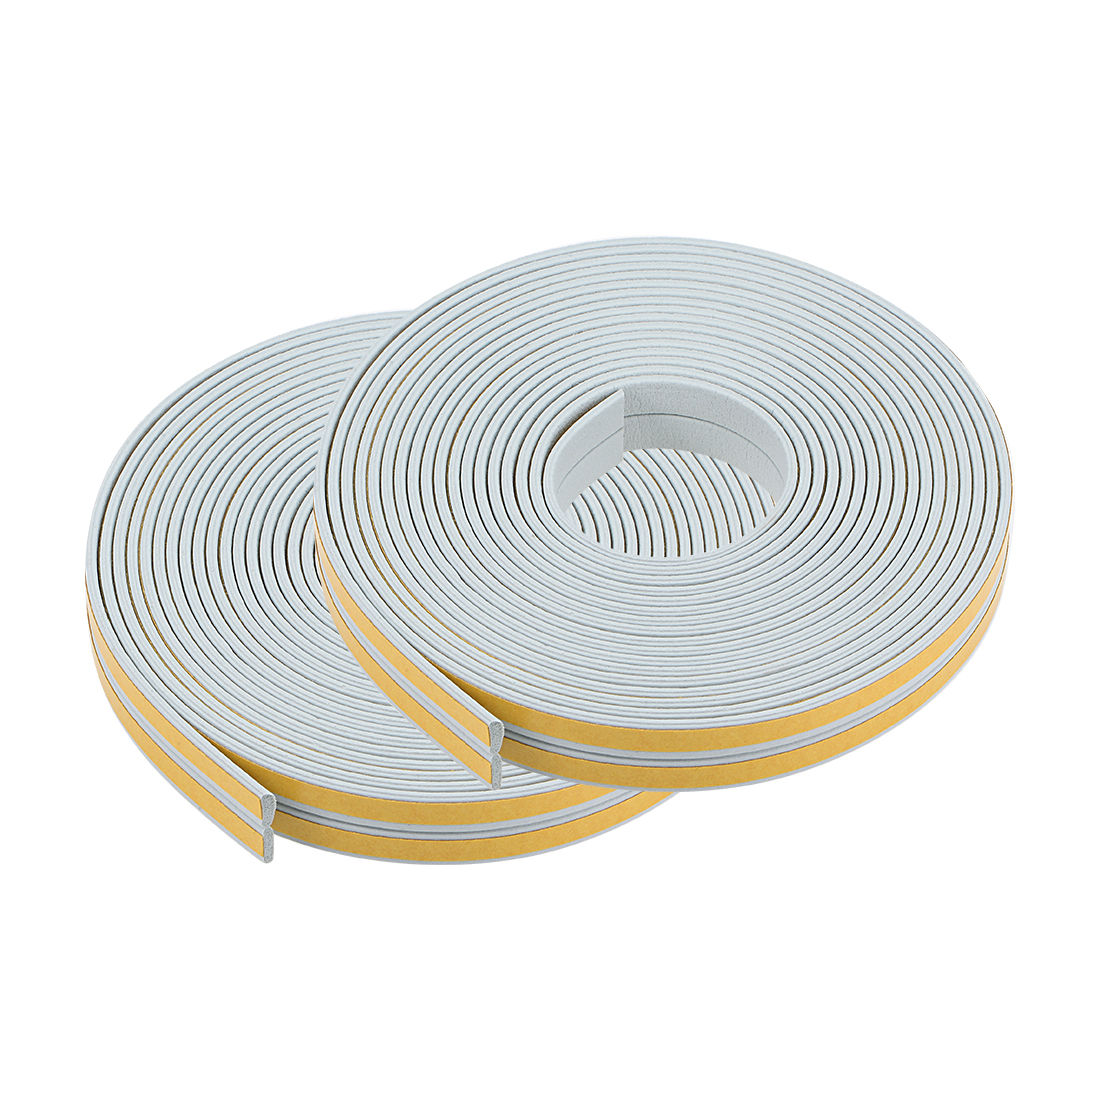 Foam Tape Adhesive 9mm Wide 2mm Thick, Total 65.6 Feet Gray 4Pcs